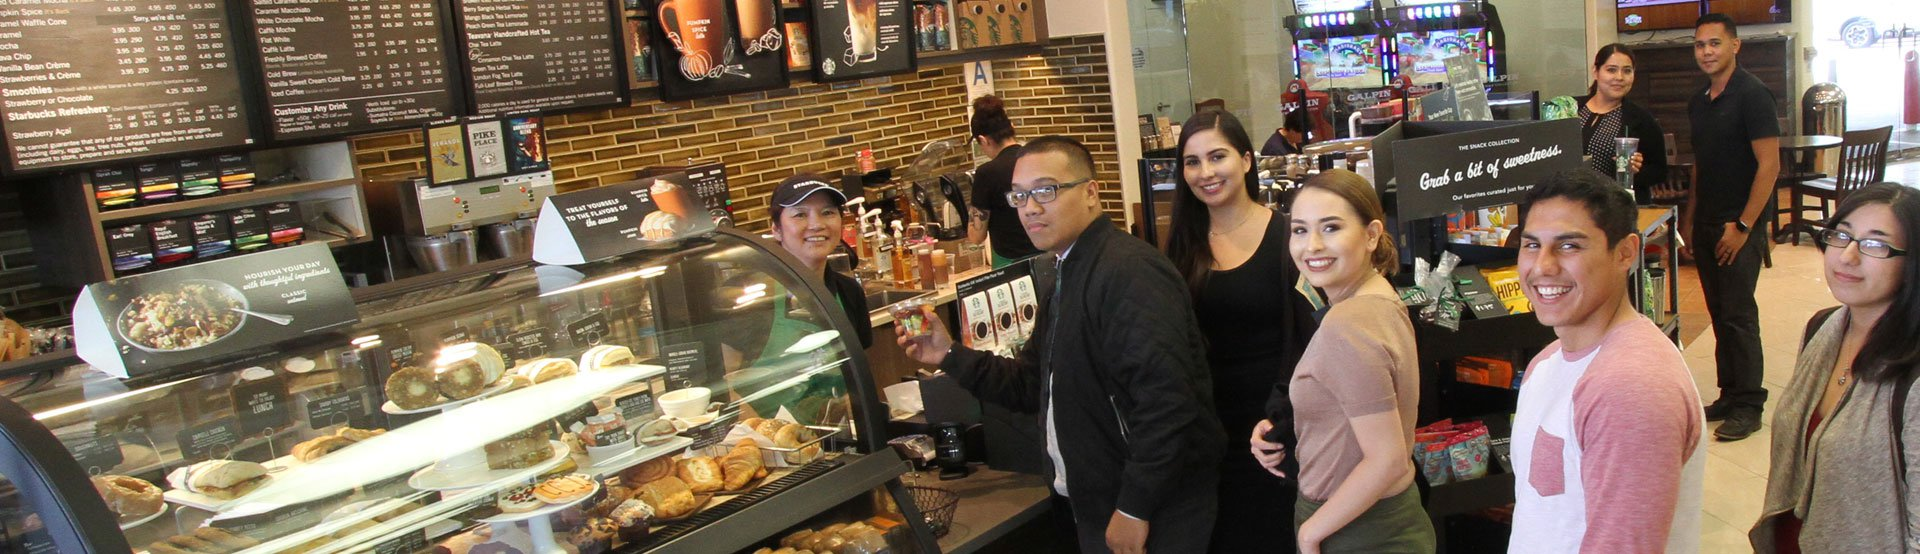 Starbucks' Customers at Galpin